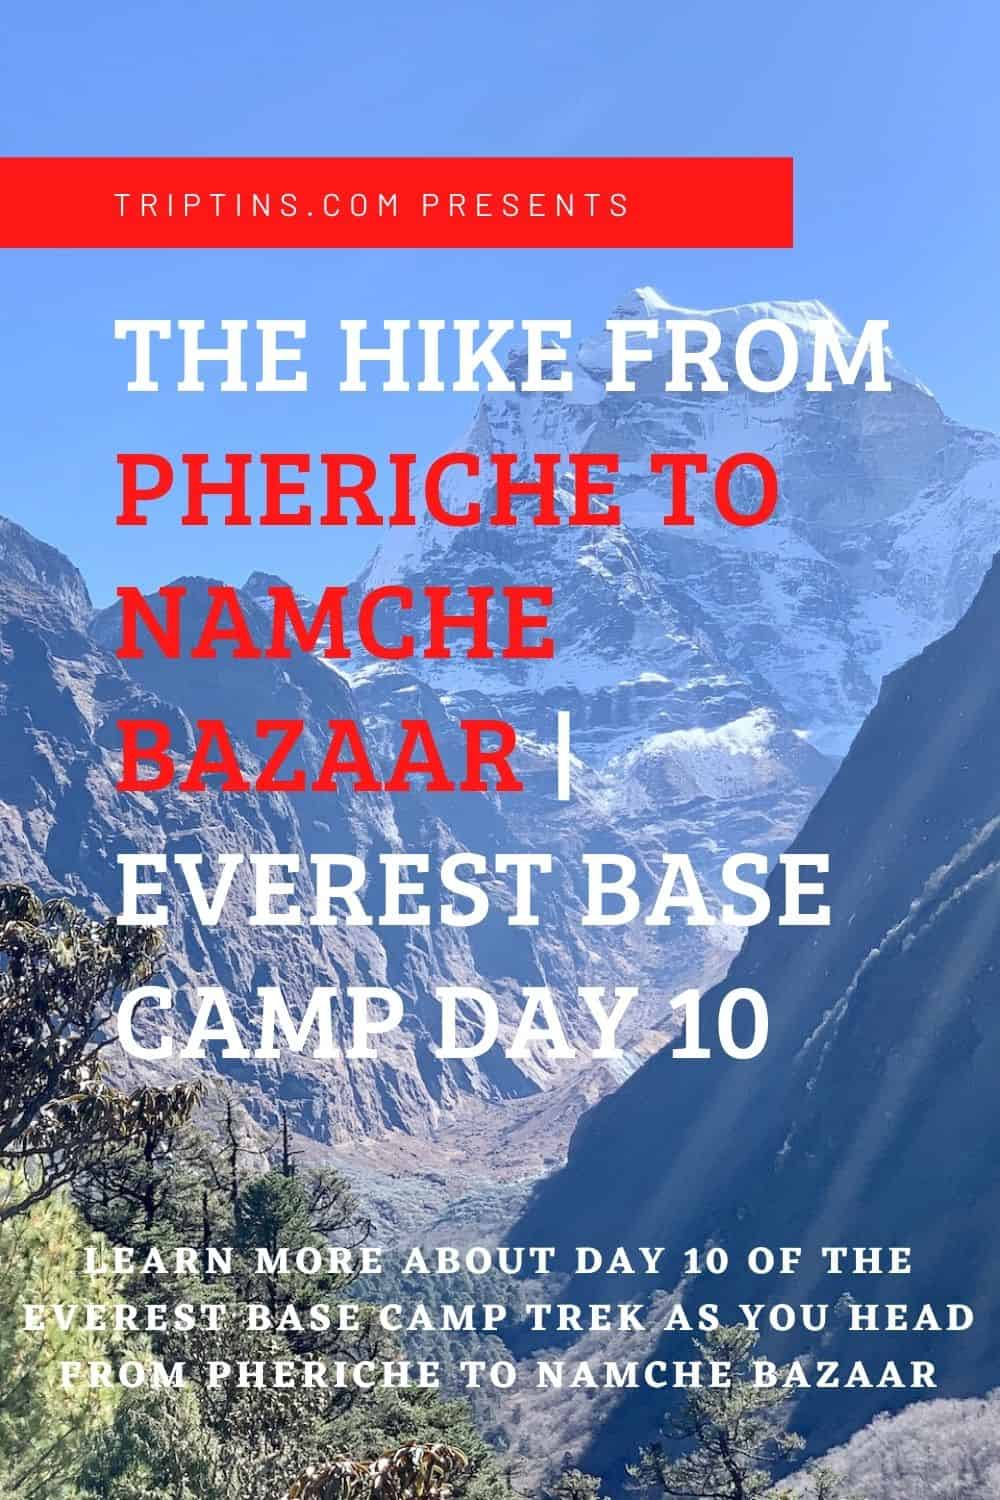 Pheriche to Namche Bazaar Everest Day 10